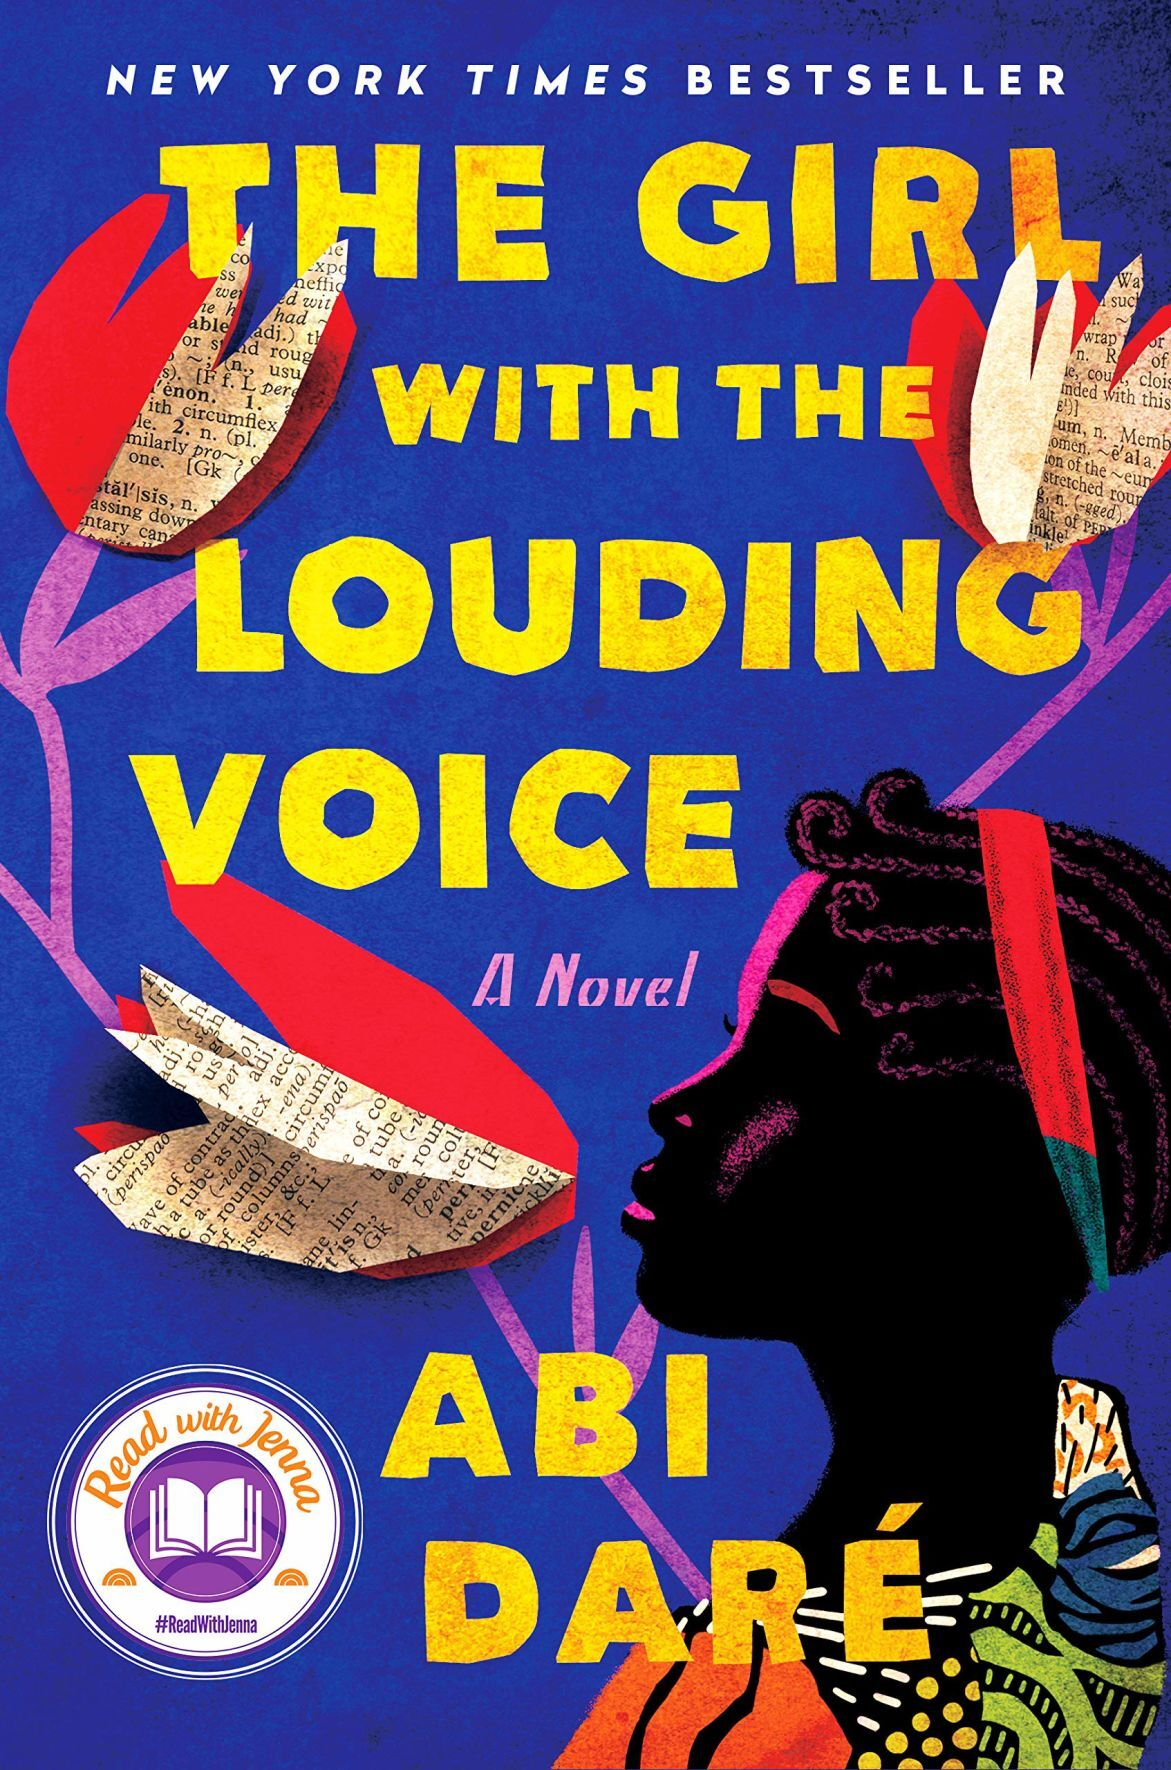 'The Girl with the Louding Voice'